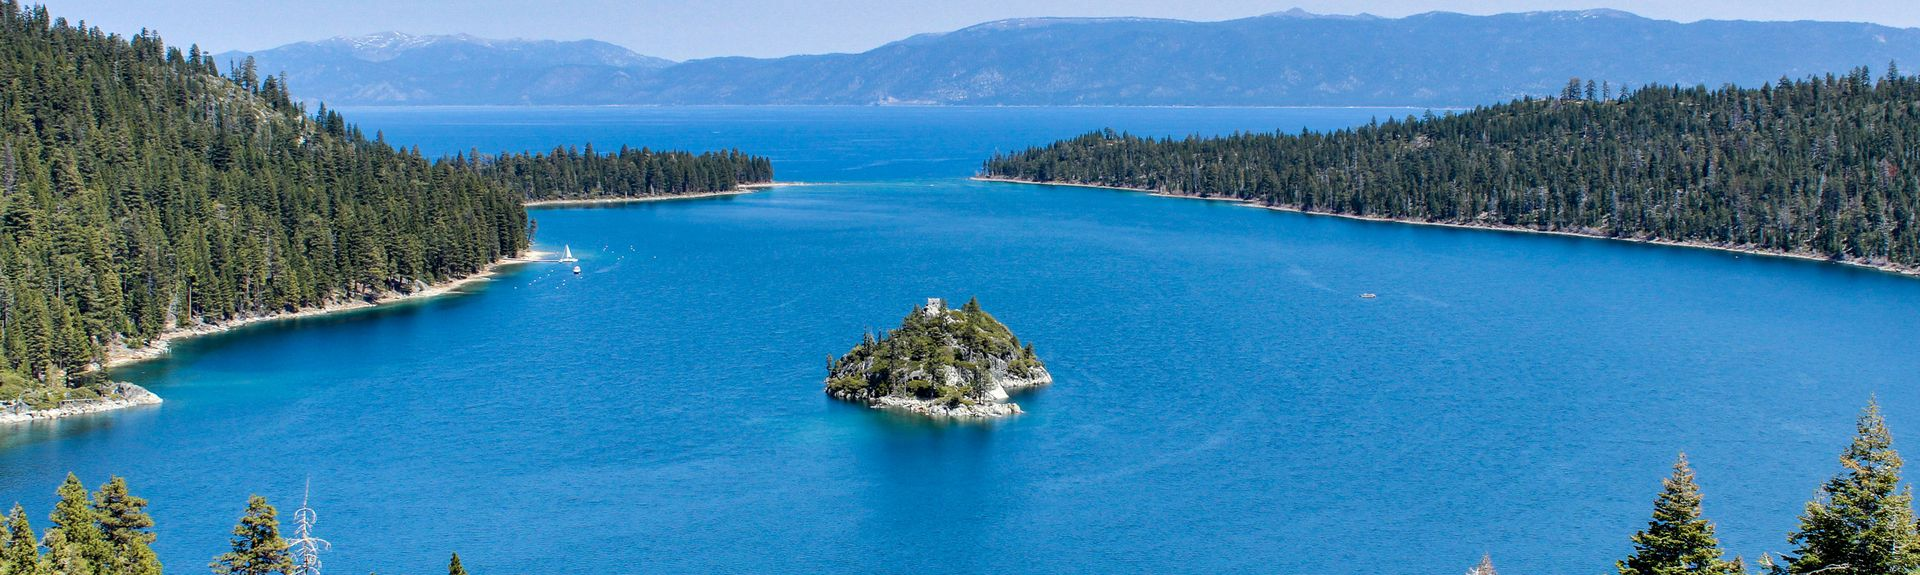 Rancho Bijou, South Lake Tahoe, California, United States of America